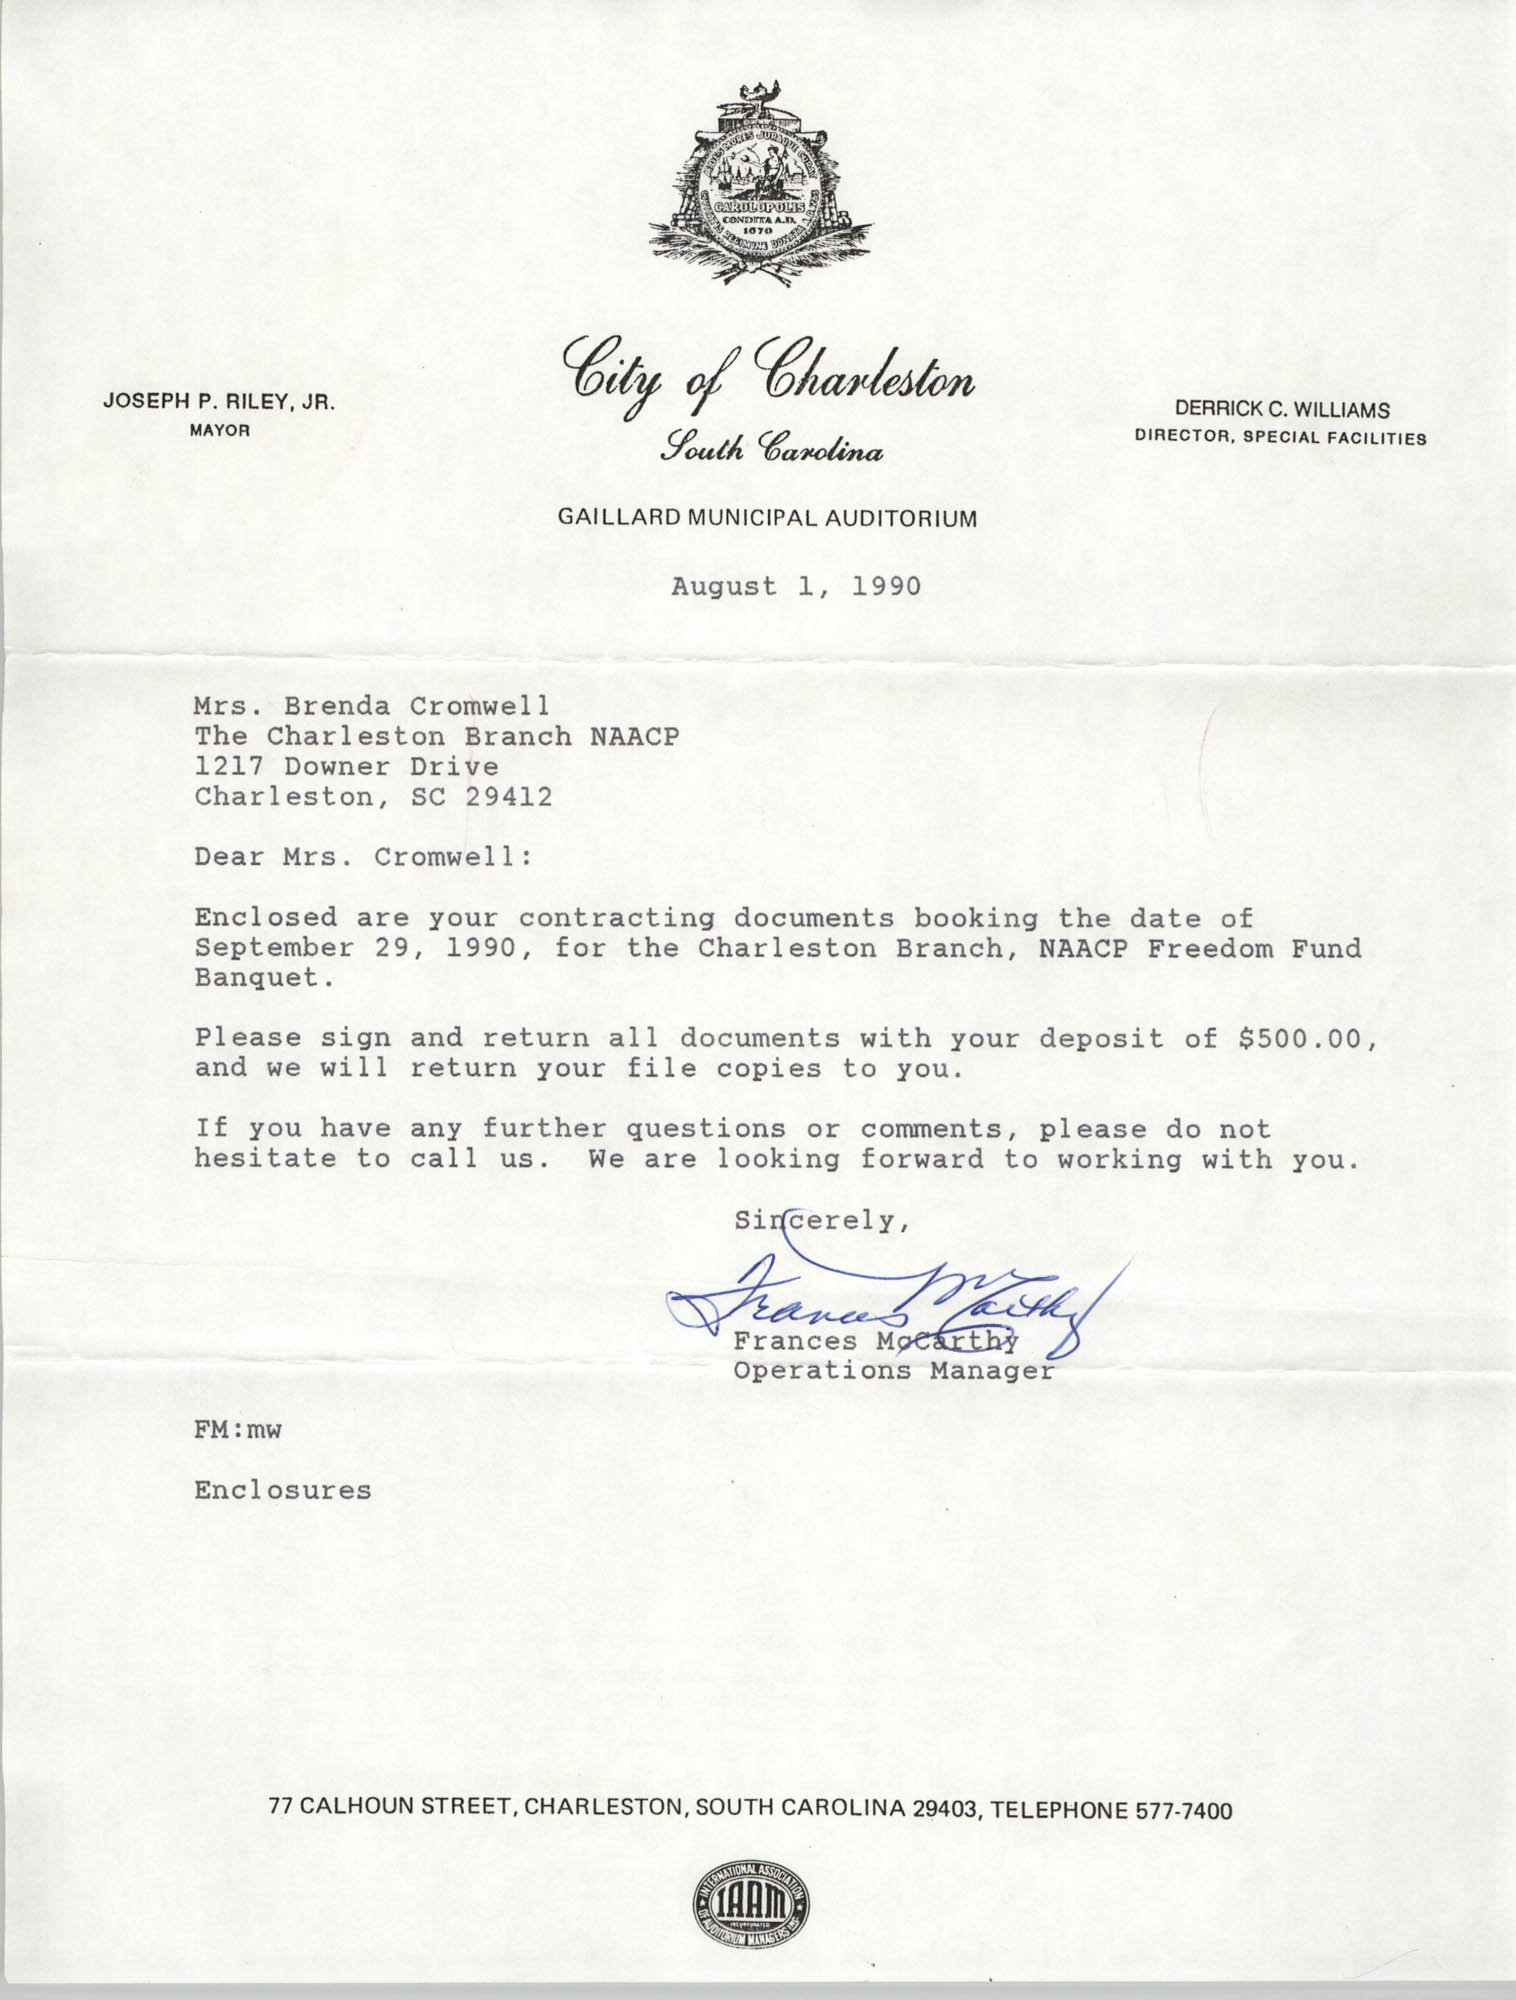 Letter from Frances McCarthy to Brenda Cromwell, August 1, 1990